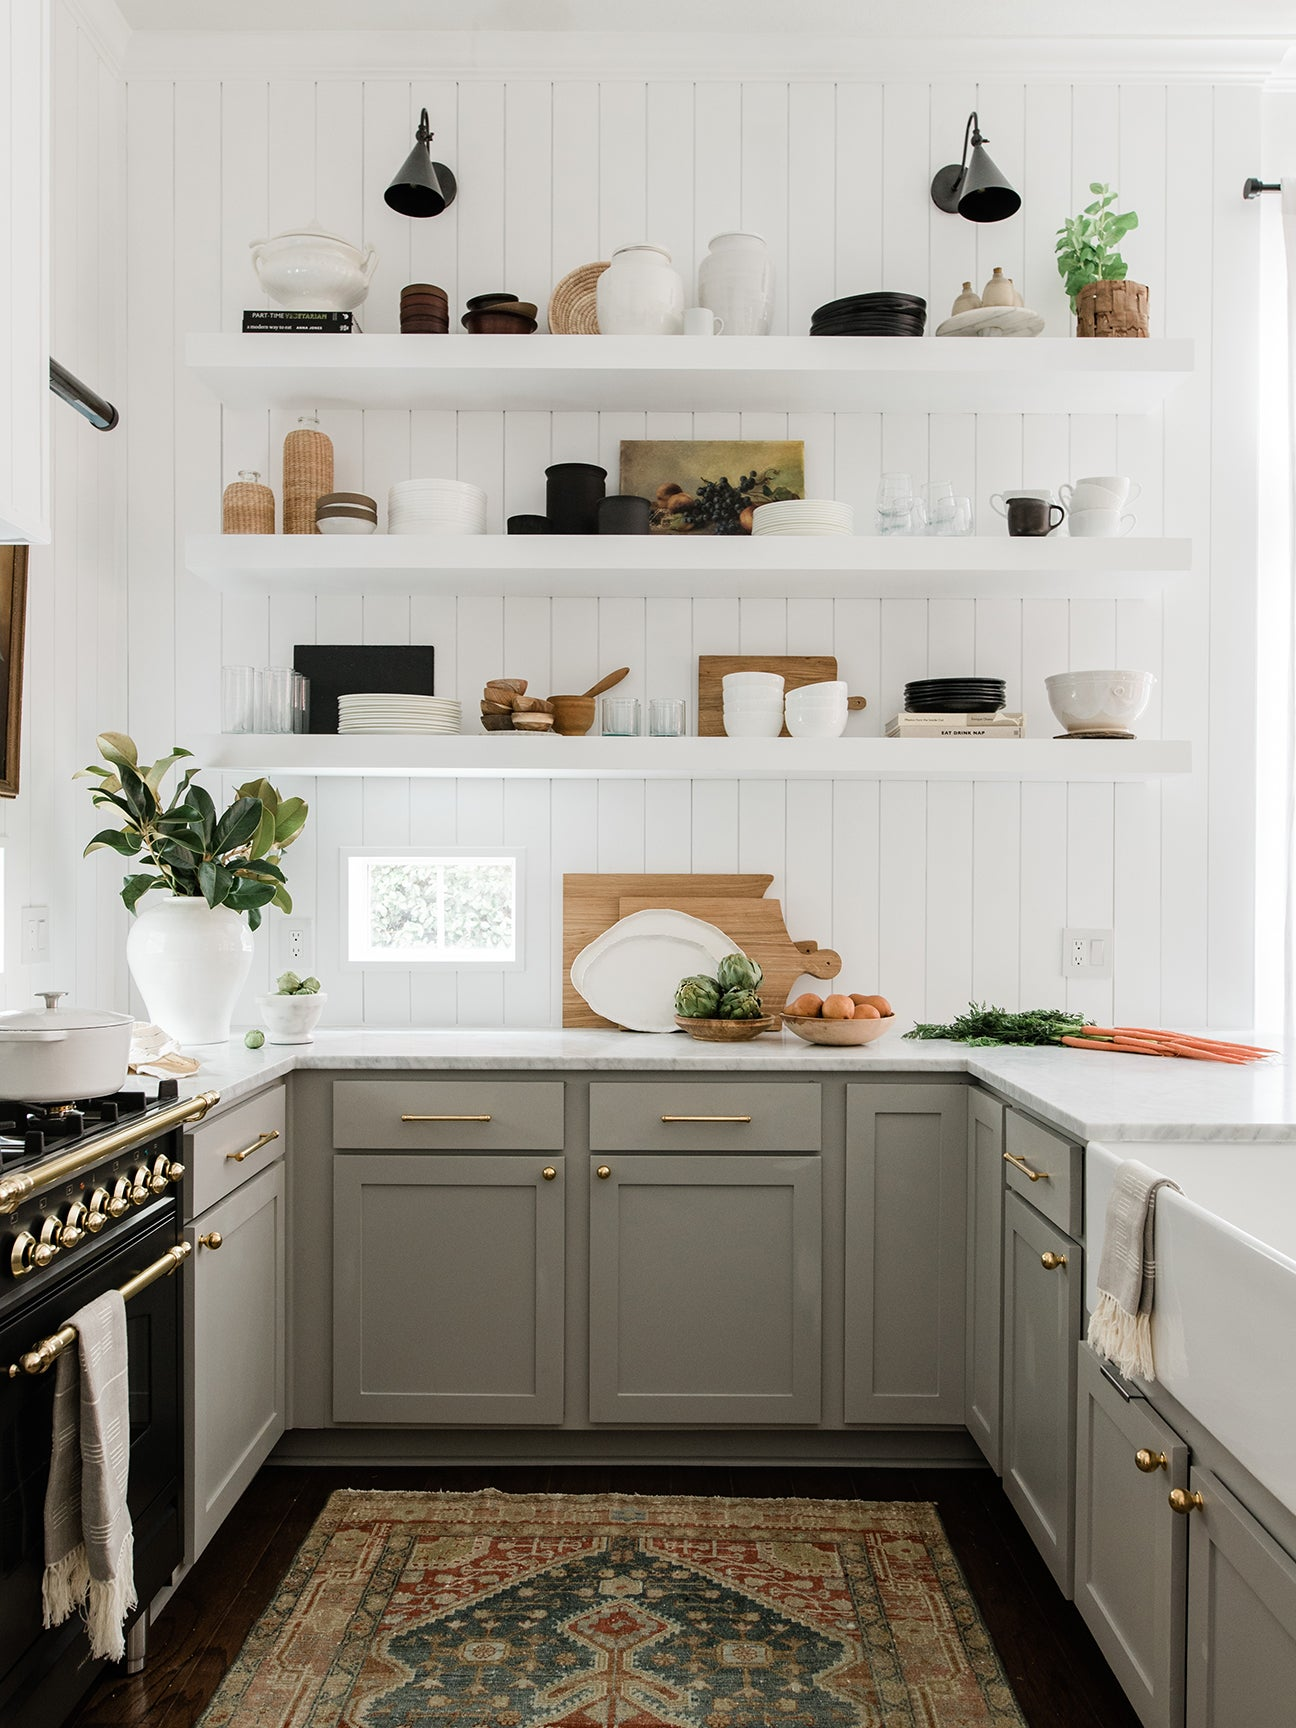 I Got My Dream Kitchen at the Price of Storage—Here's How I Made It Work